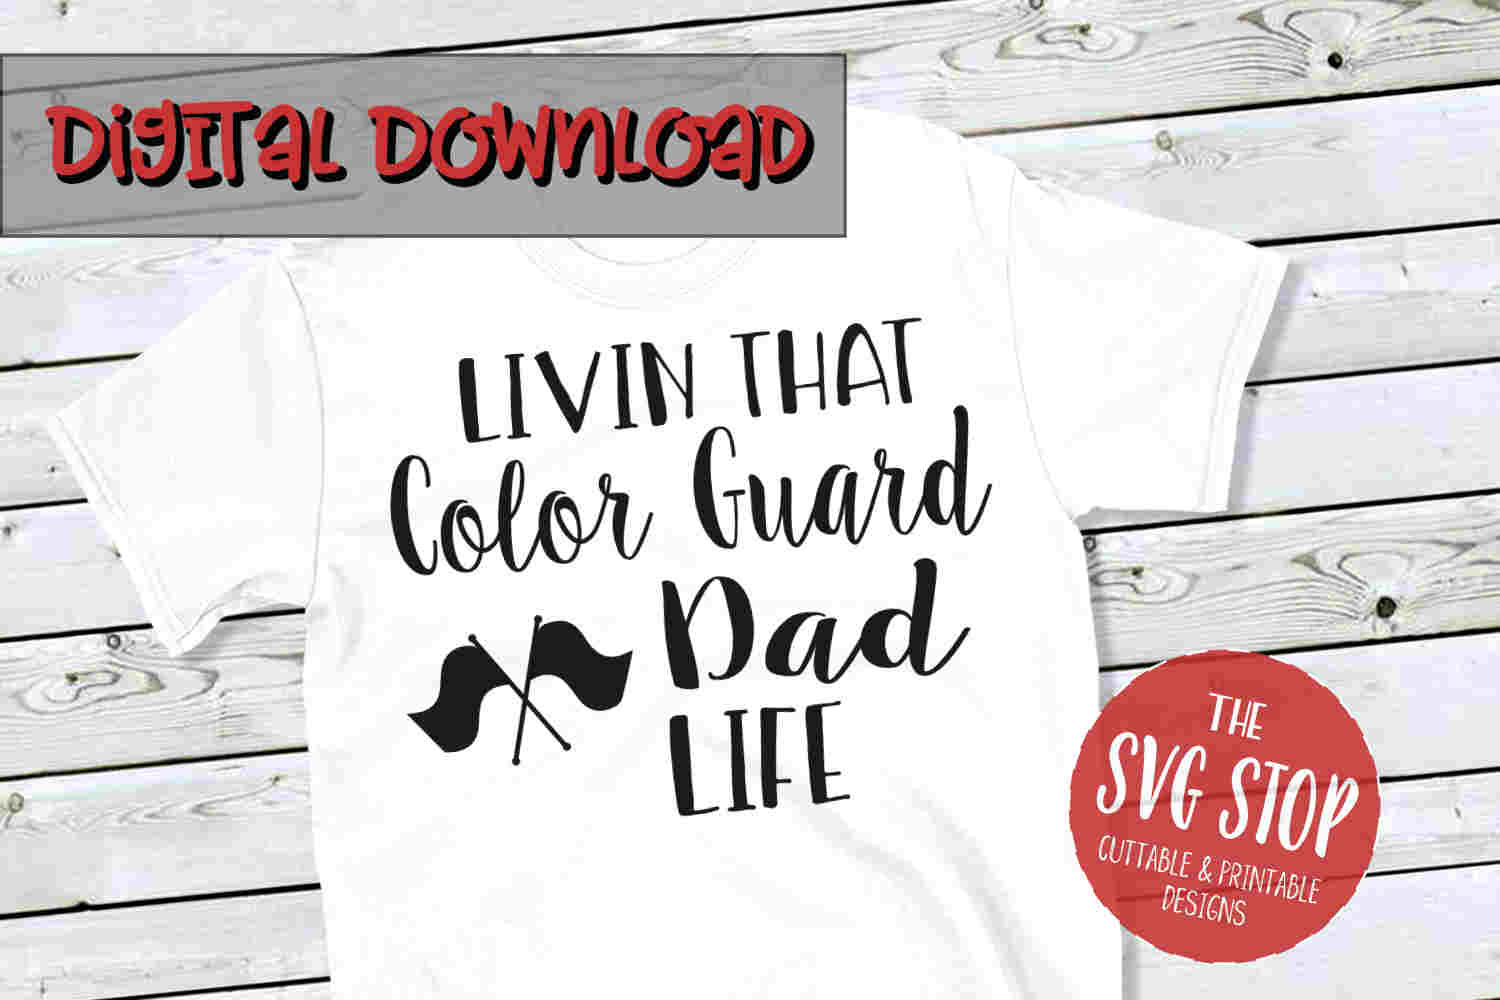 Color Guard Dad Life -SVG, PNG, DXF example image 1